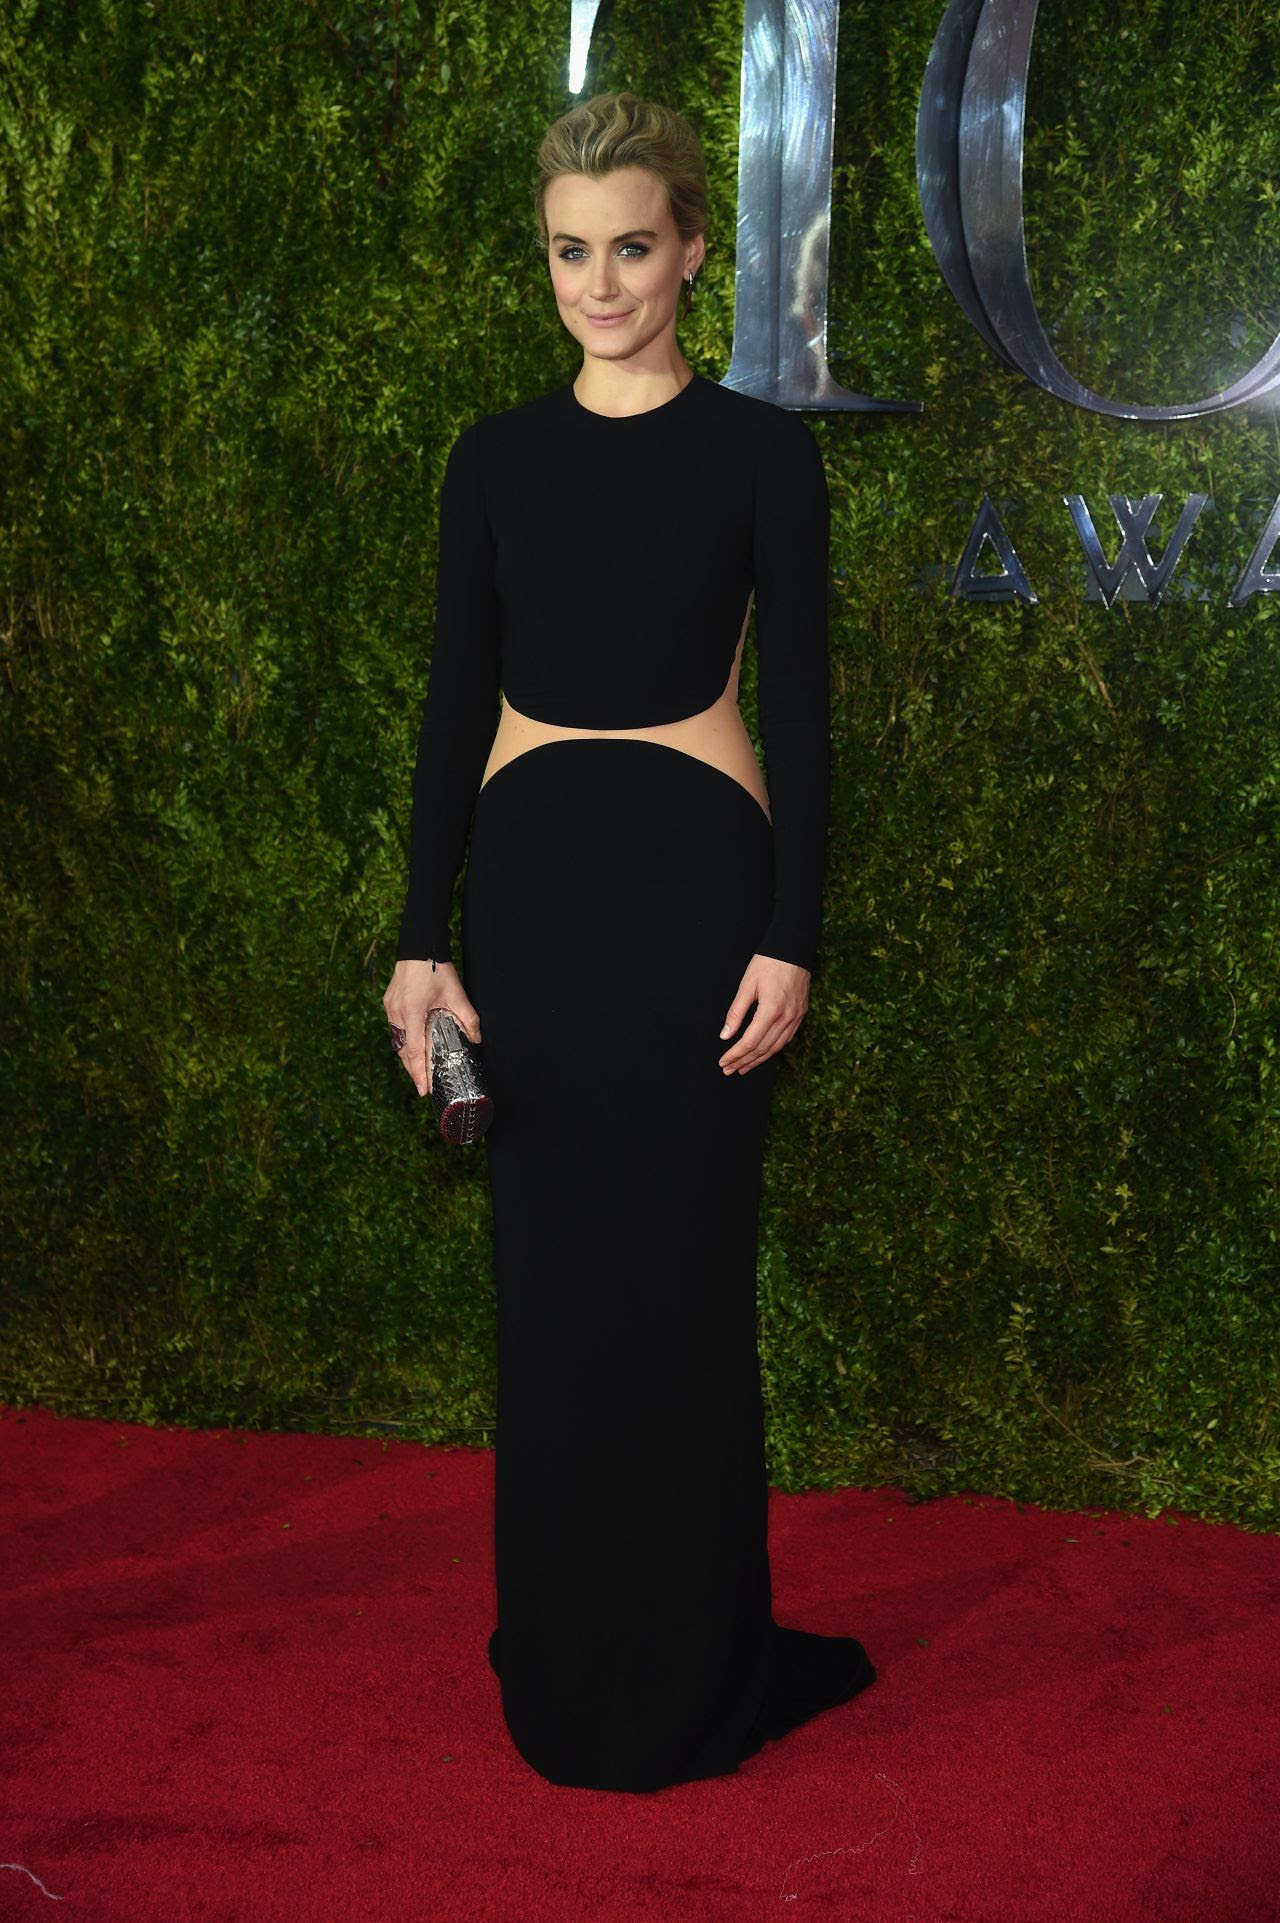 http://fashionsizzle.com/wp-content/uploads/2015/06/taylor-schilling-2015-tony-awards-in-new-york-city_3.jpg